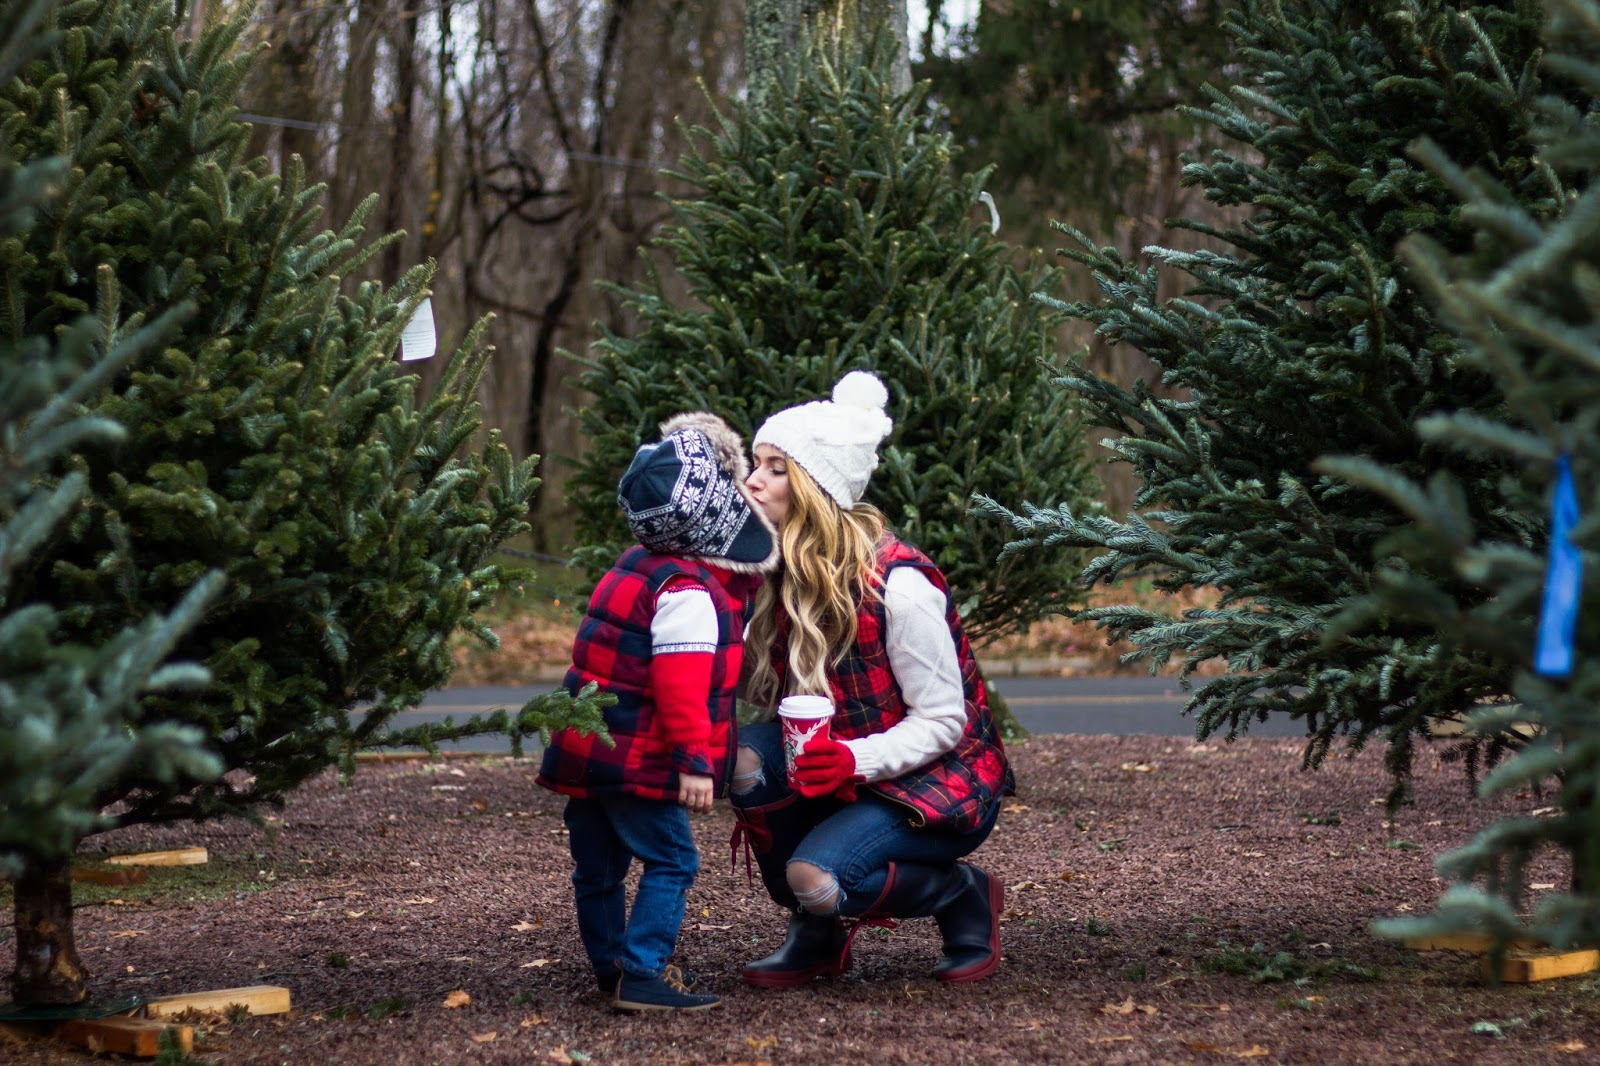 Mother and Son Holiday Outfit Ideas